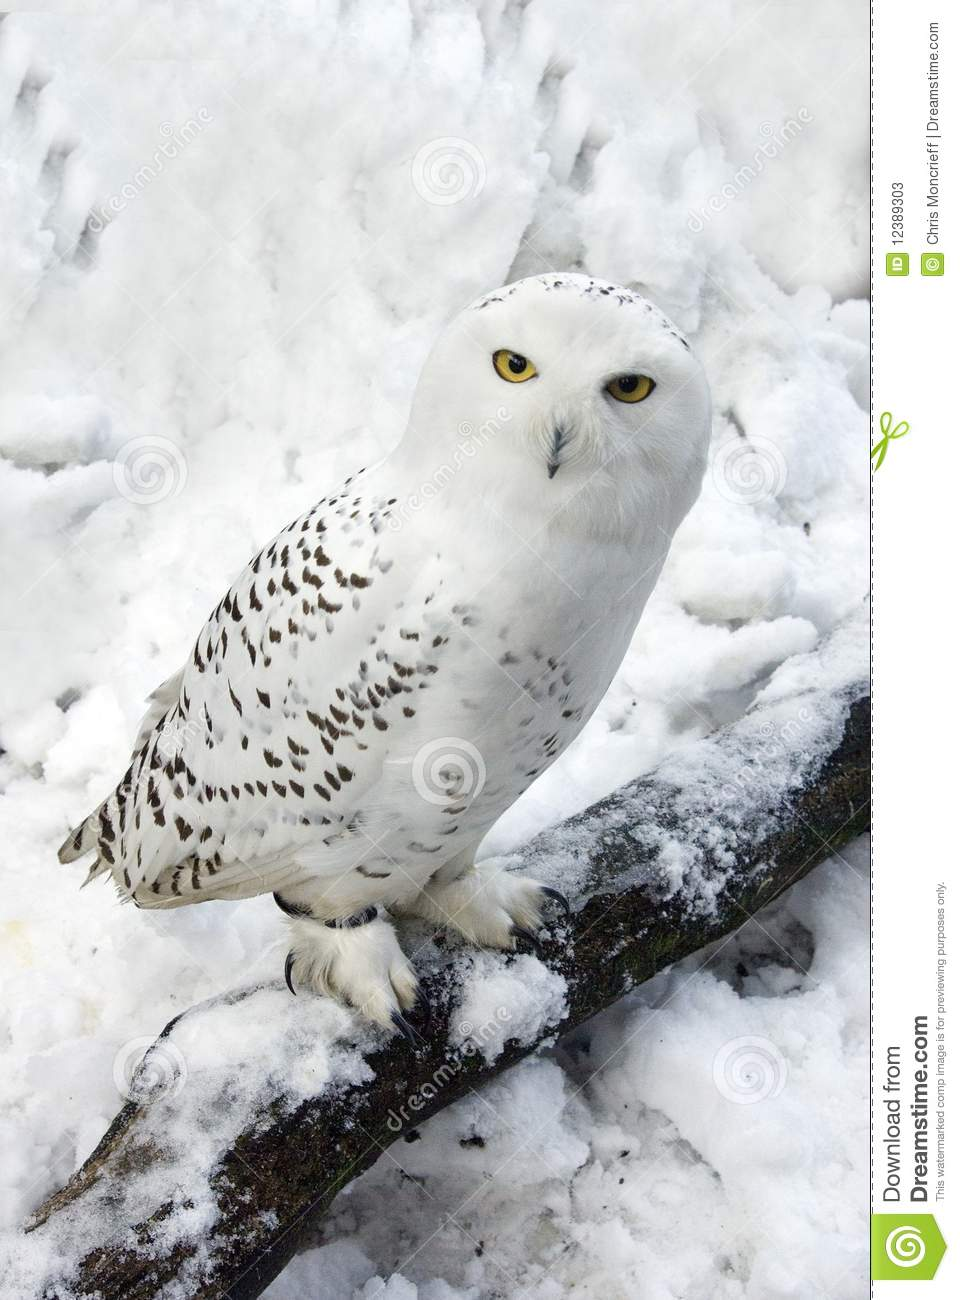 Snowy Owl In Snow Stock Photos - Image: 12389303